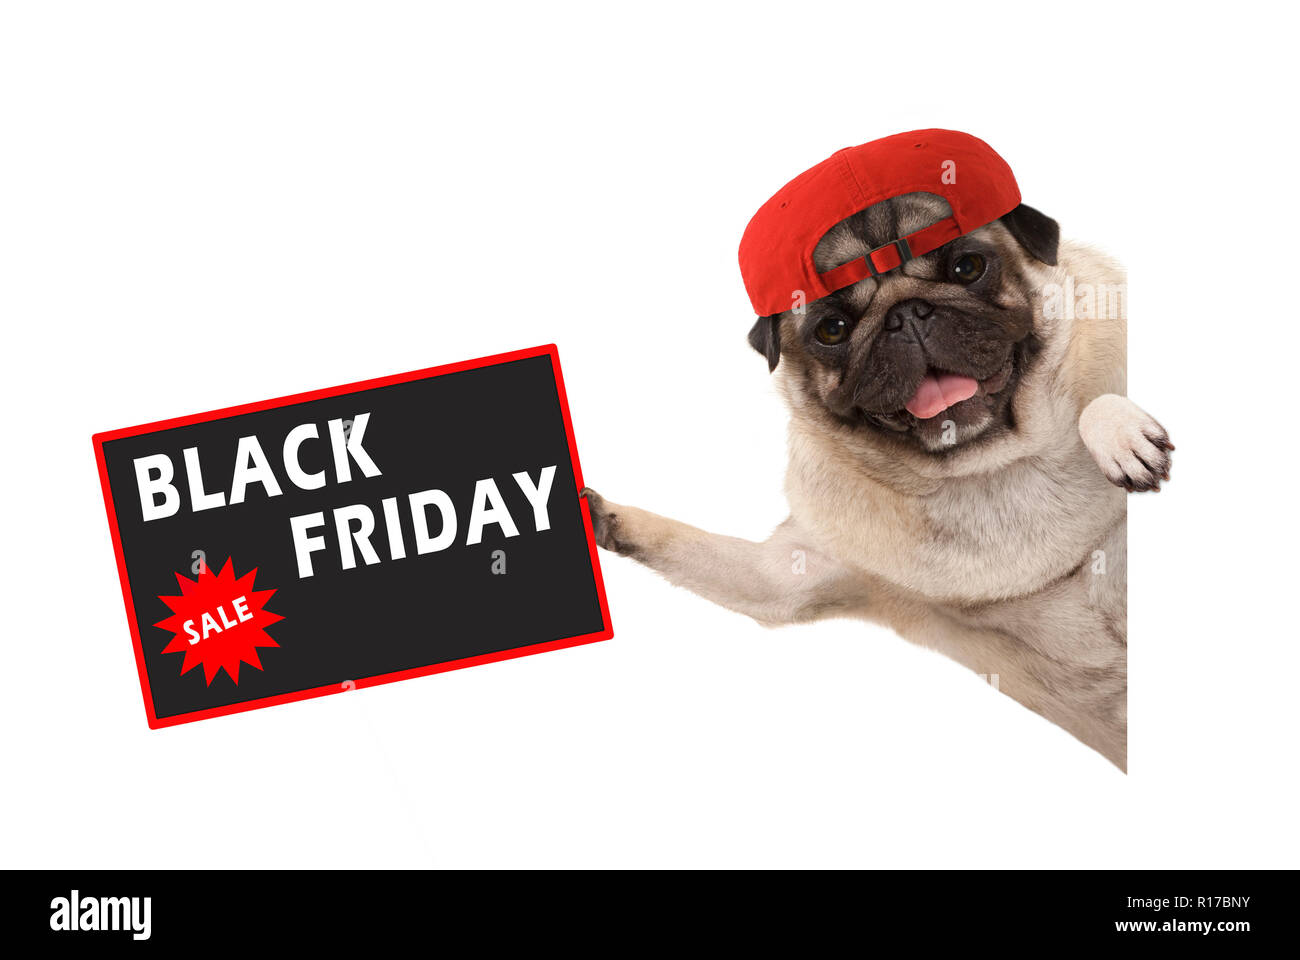 frolic pug puppy dog with red cap, holding up sale sign with text Black Friday, hanging sideways from white banner, isolated Stock Photo